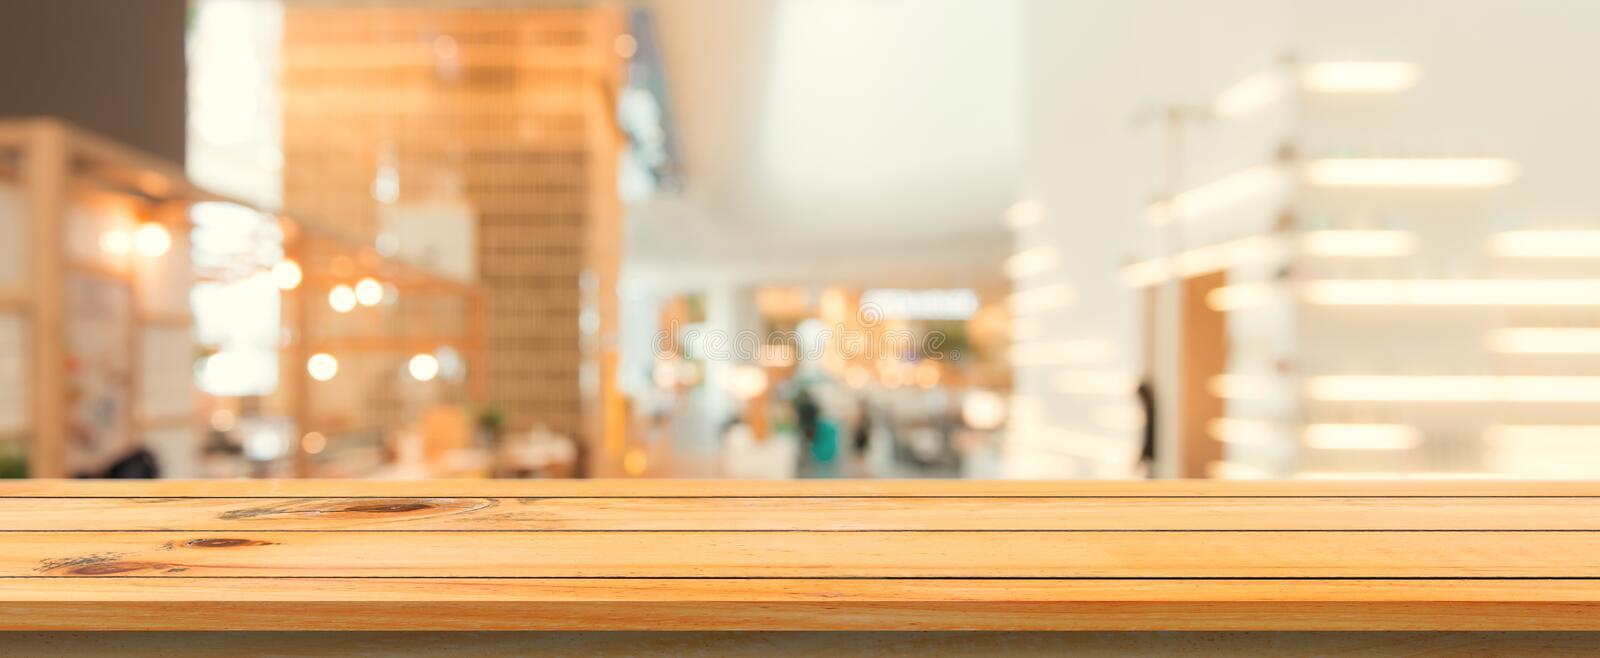 Wooden board empty table top blurred background. Perspective brown wood table over blur in coffee shop background.Panoramic banner. Wooden board empty table top royalty free stock image